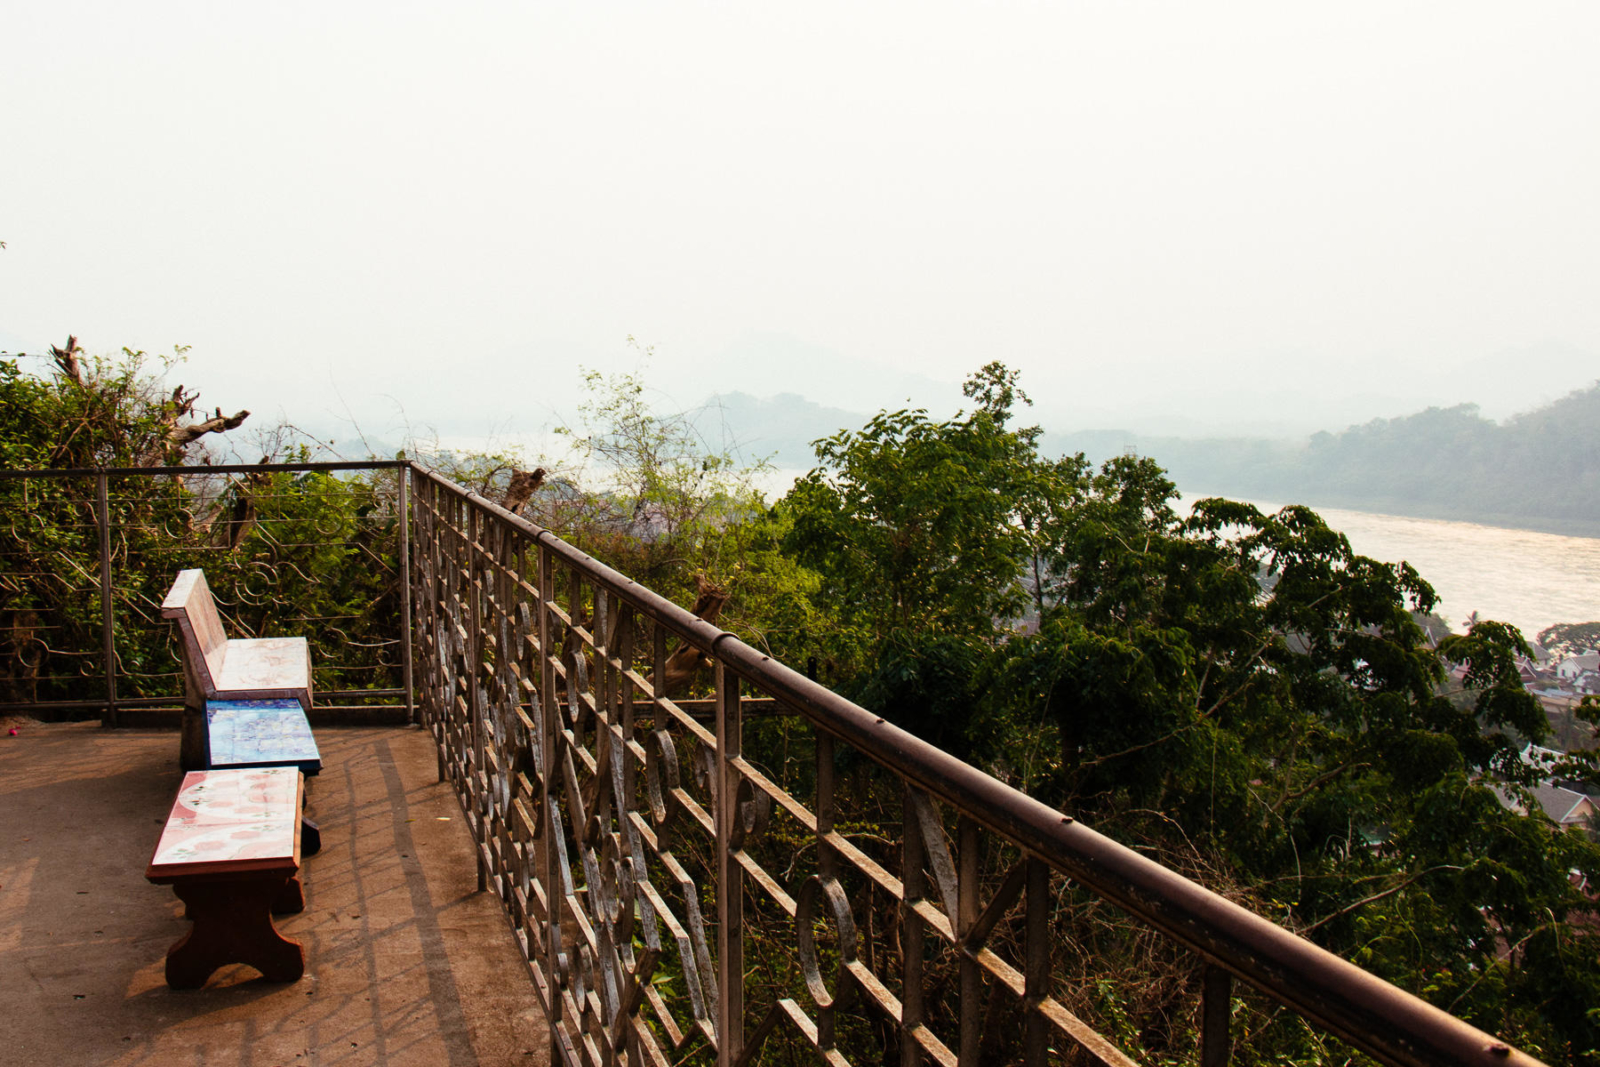 View from top of Mount Phousi, Luang Prabang, Lao